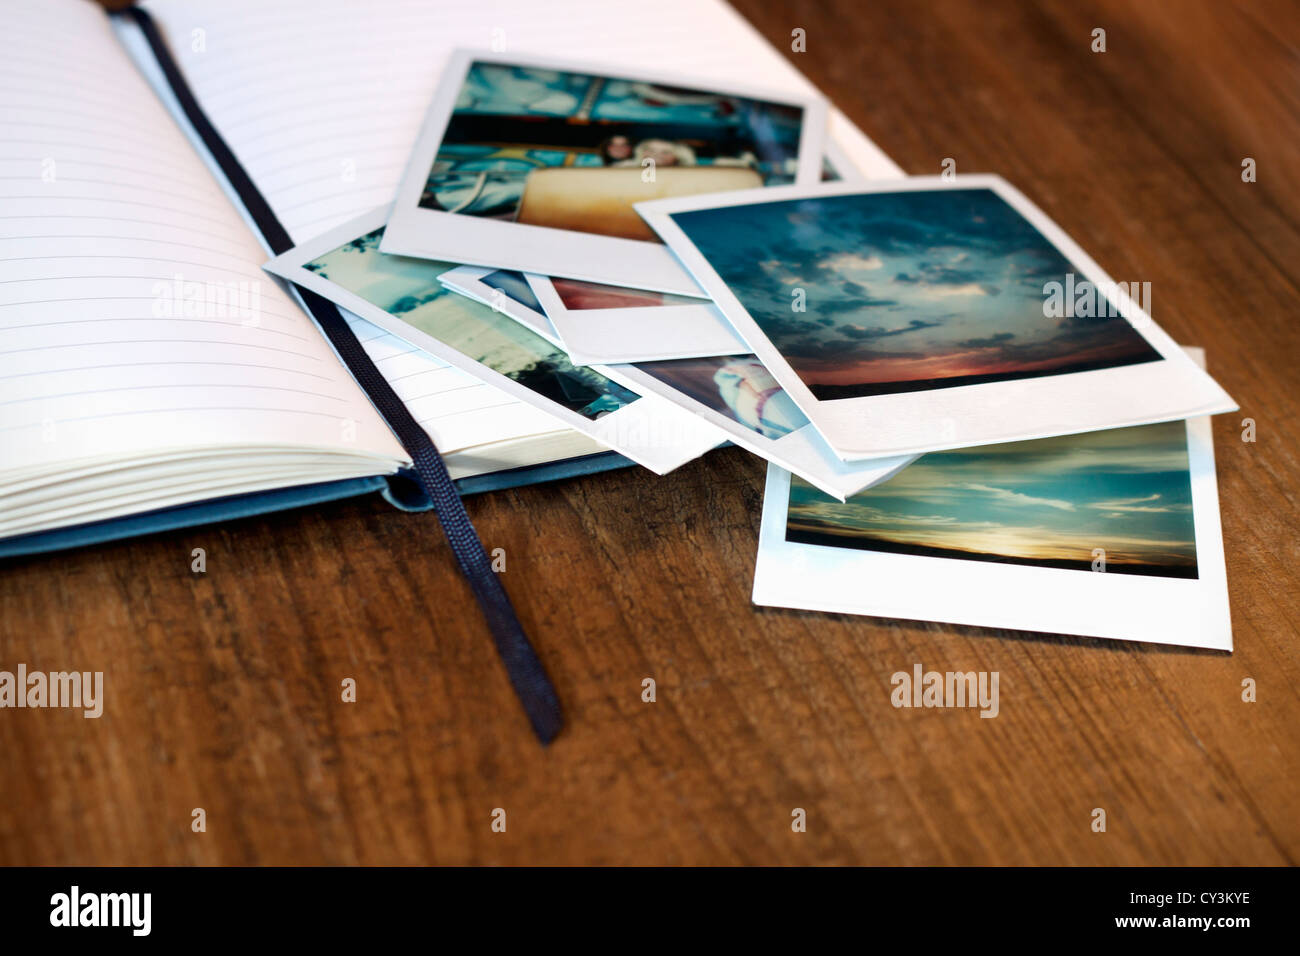 Vintage polaroid pictures and an open journal. - Stock Image